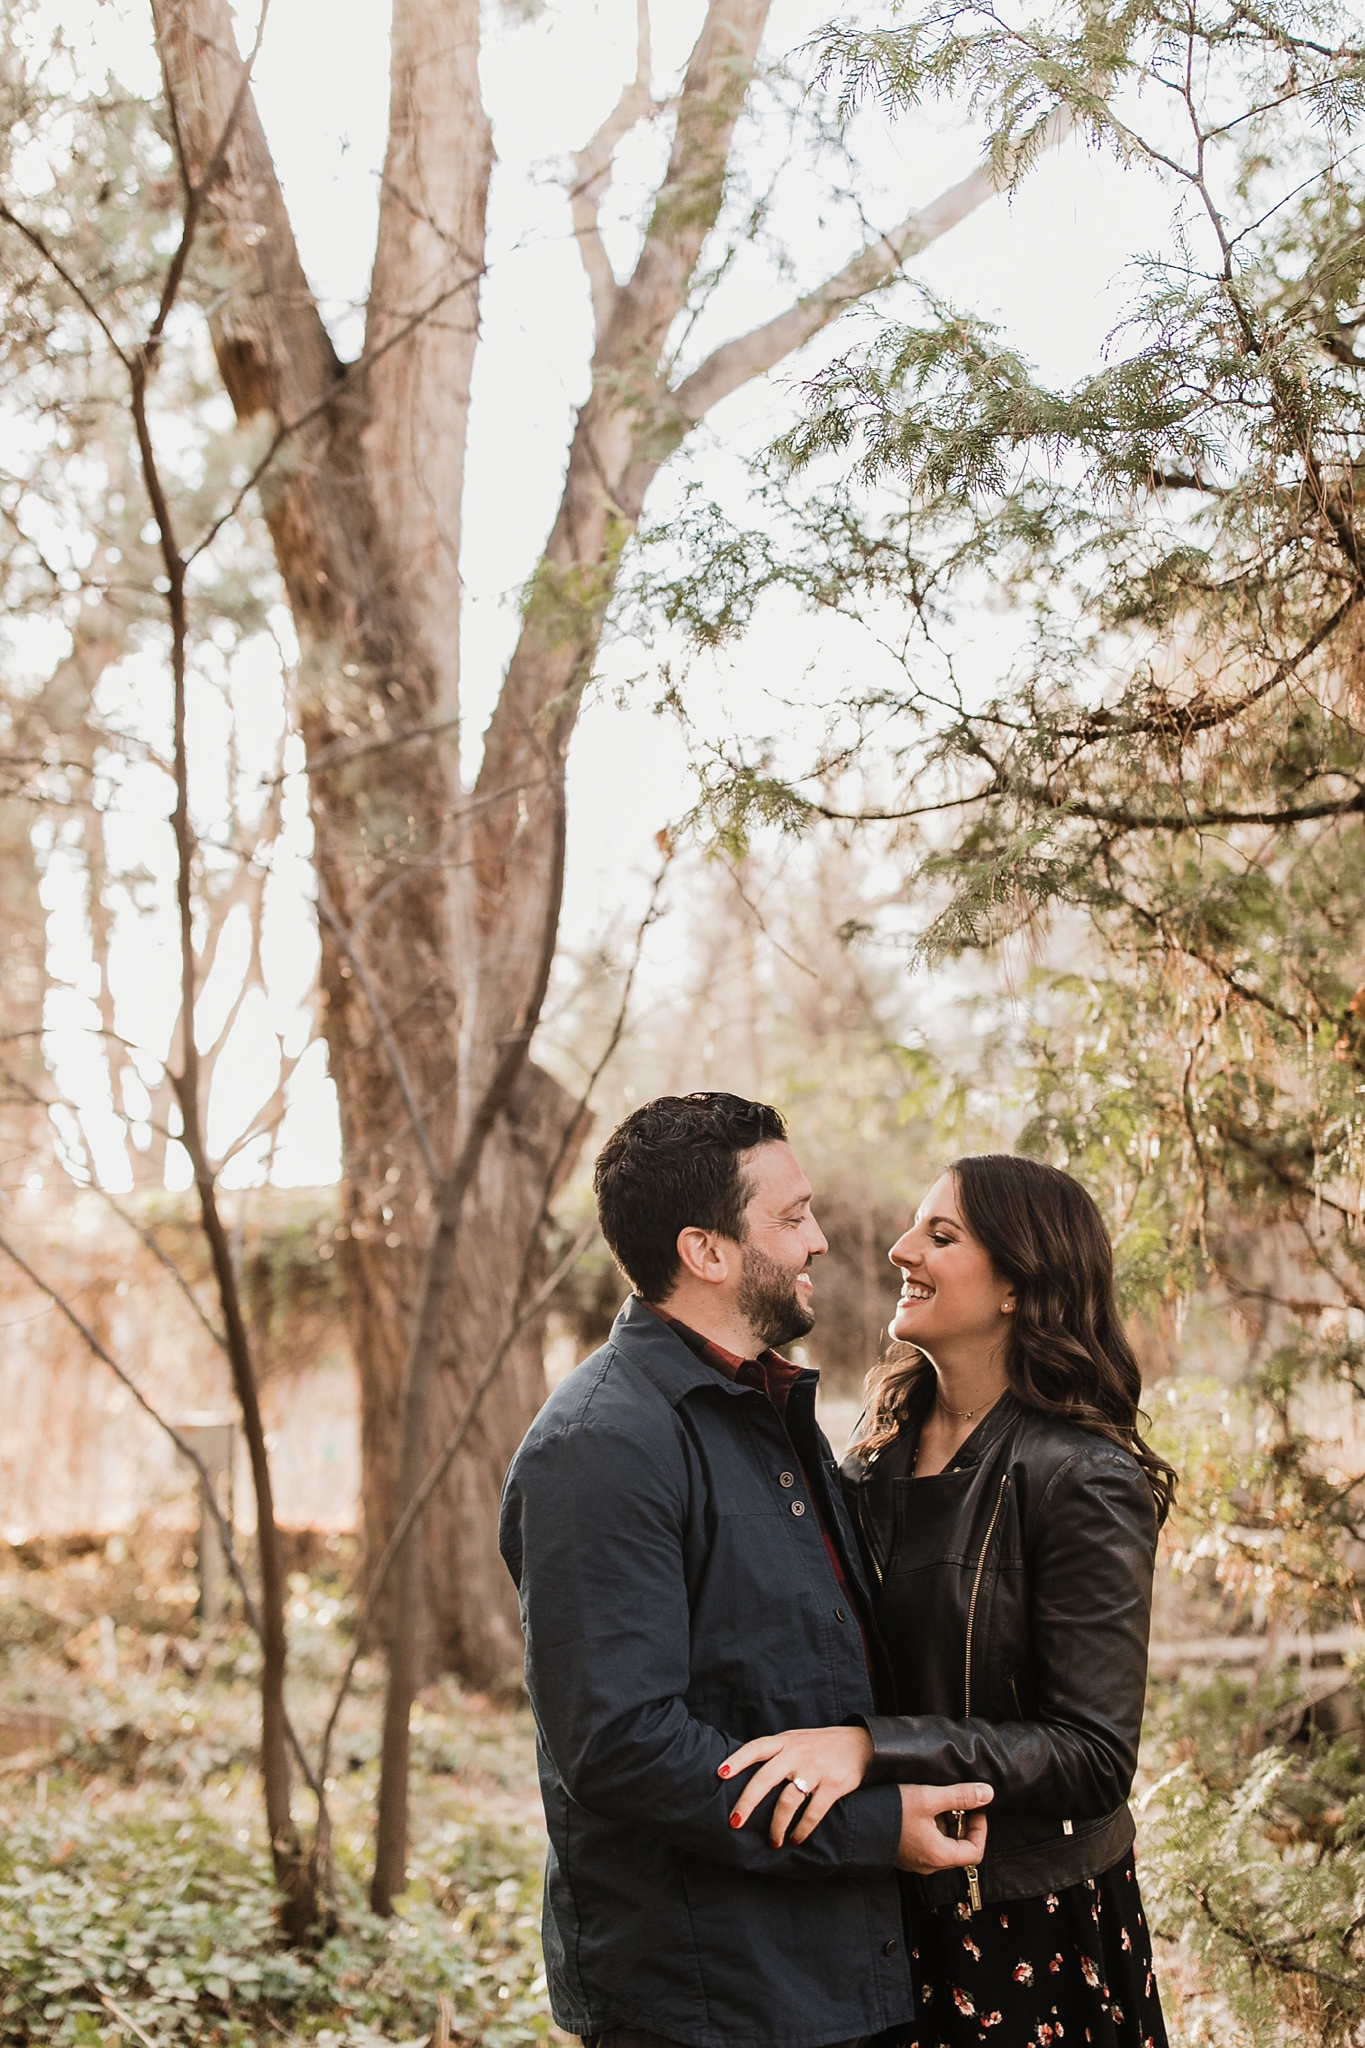 Alicia+lucia+photography+-+albuquerque+wedding+photographer+-+santa+fe+wedding+photography+-+new+mexico+wedding+photographer+-+new+mexico+wedding+-+new+mexico+engagement+-+los+poblanos+engagement+-+los+poblanos+wedding+-+fall+wedding_0030.jpg